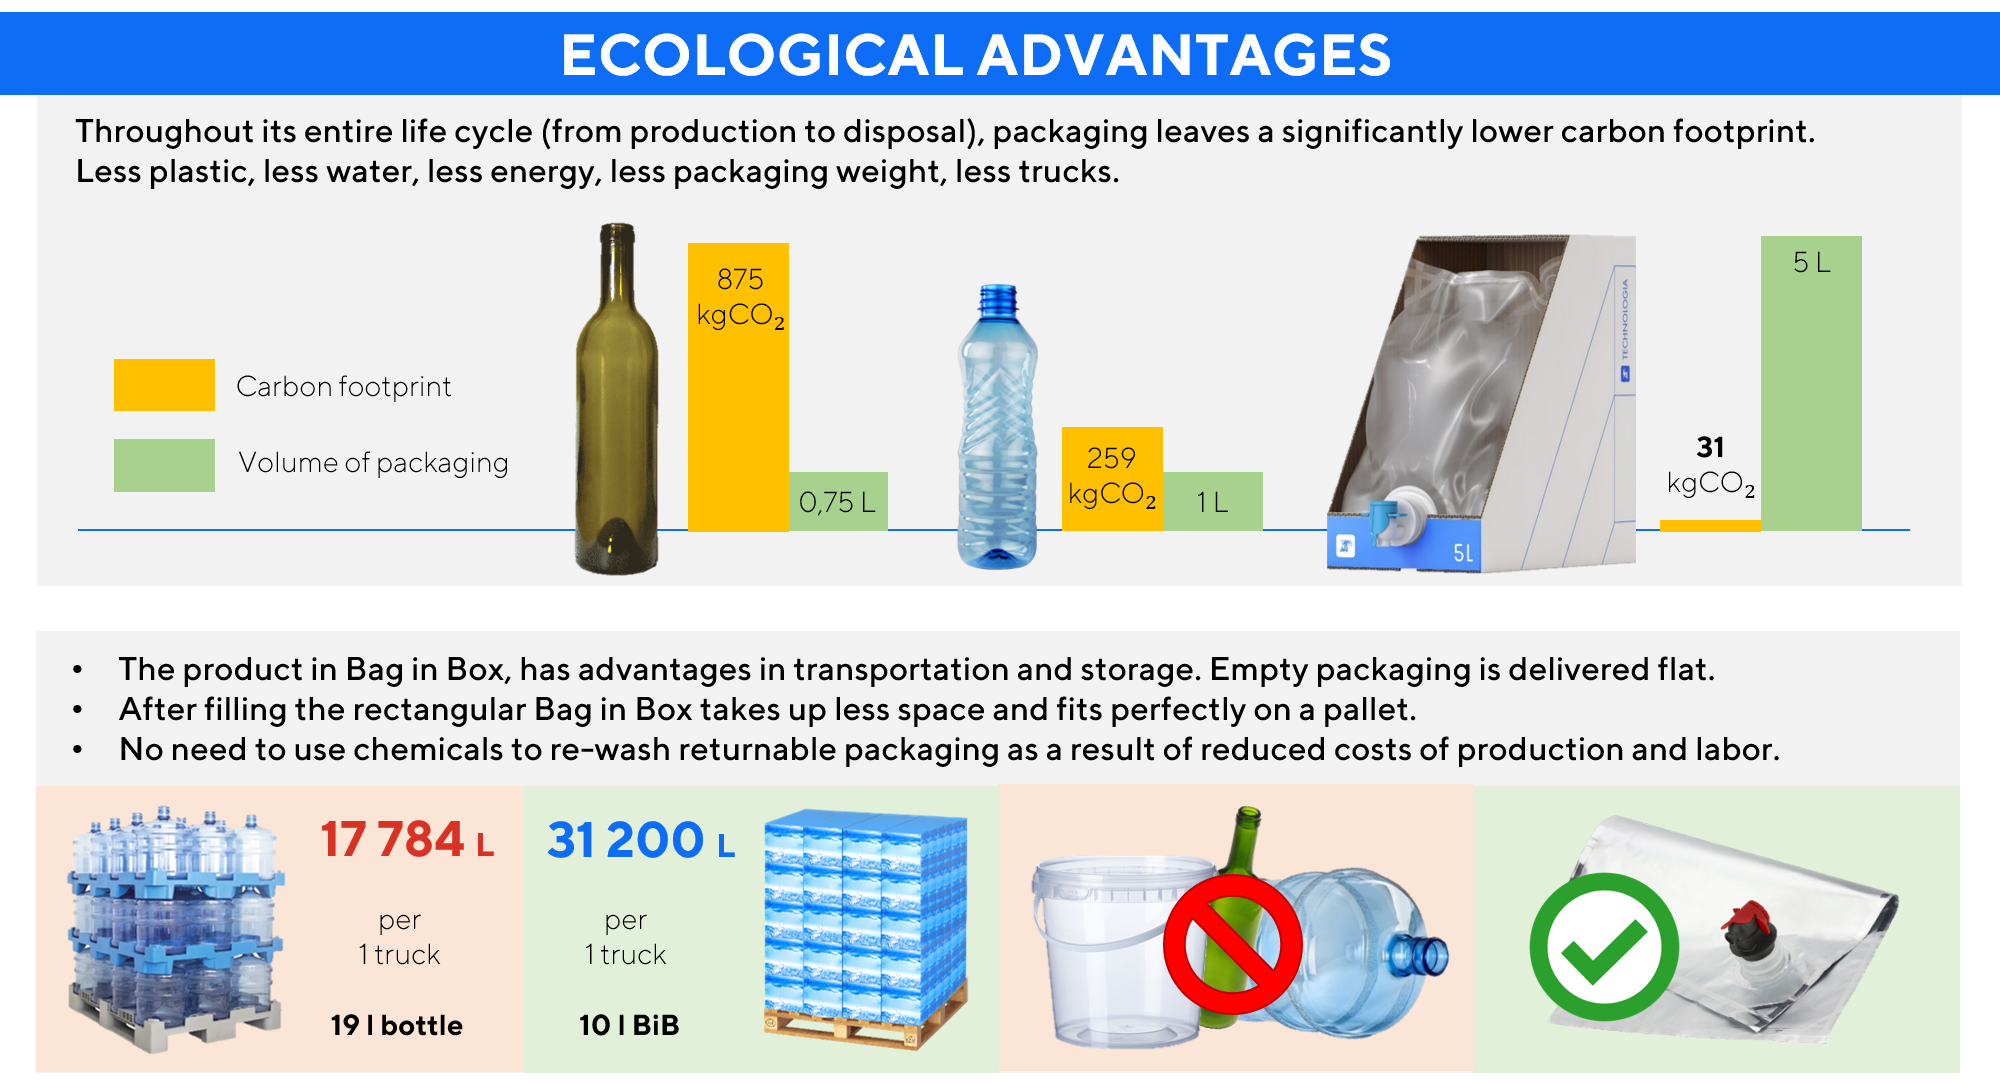 Sustainability of Bag-in-box: advantages of the flexible packaging. Image 2